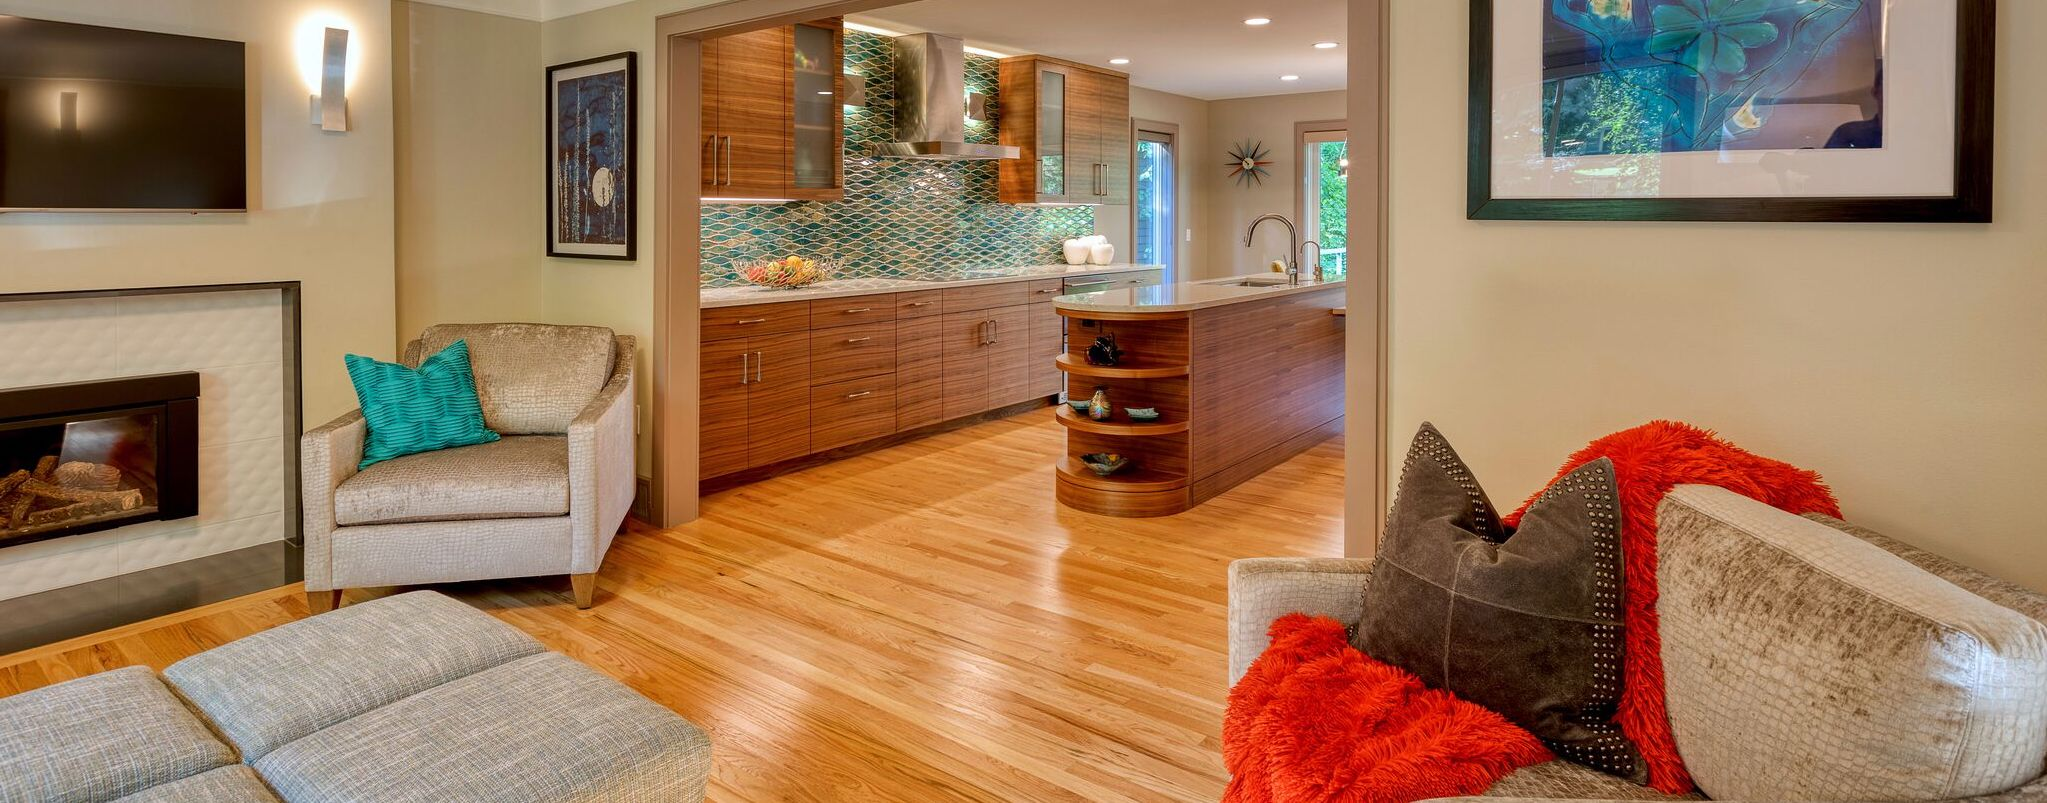 whole-house-remodeling-2